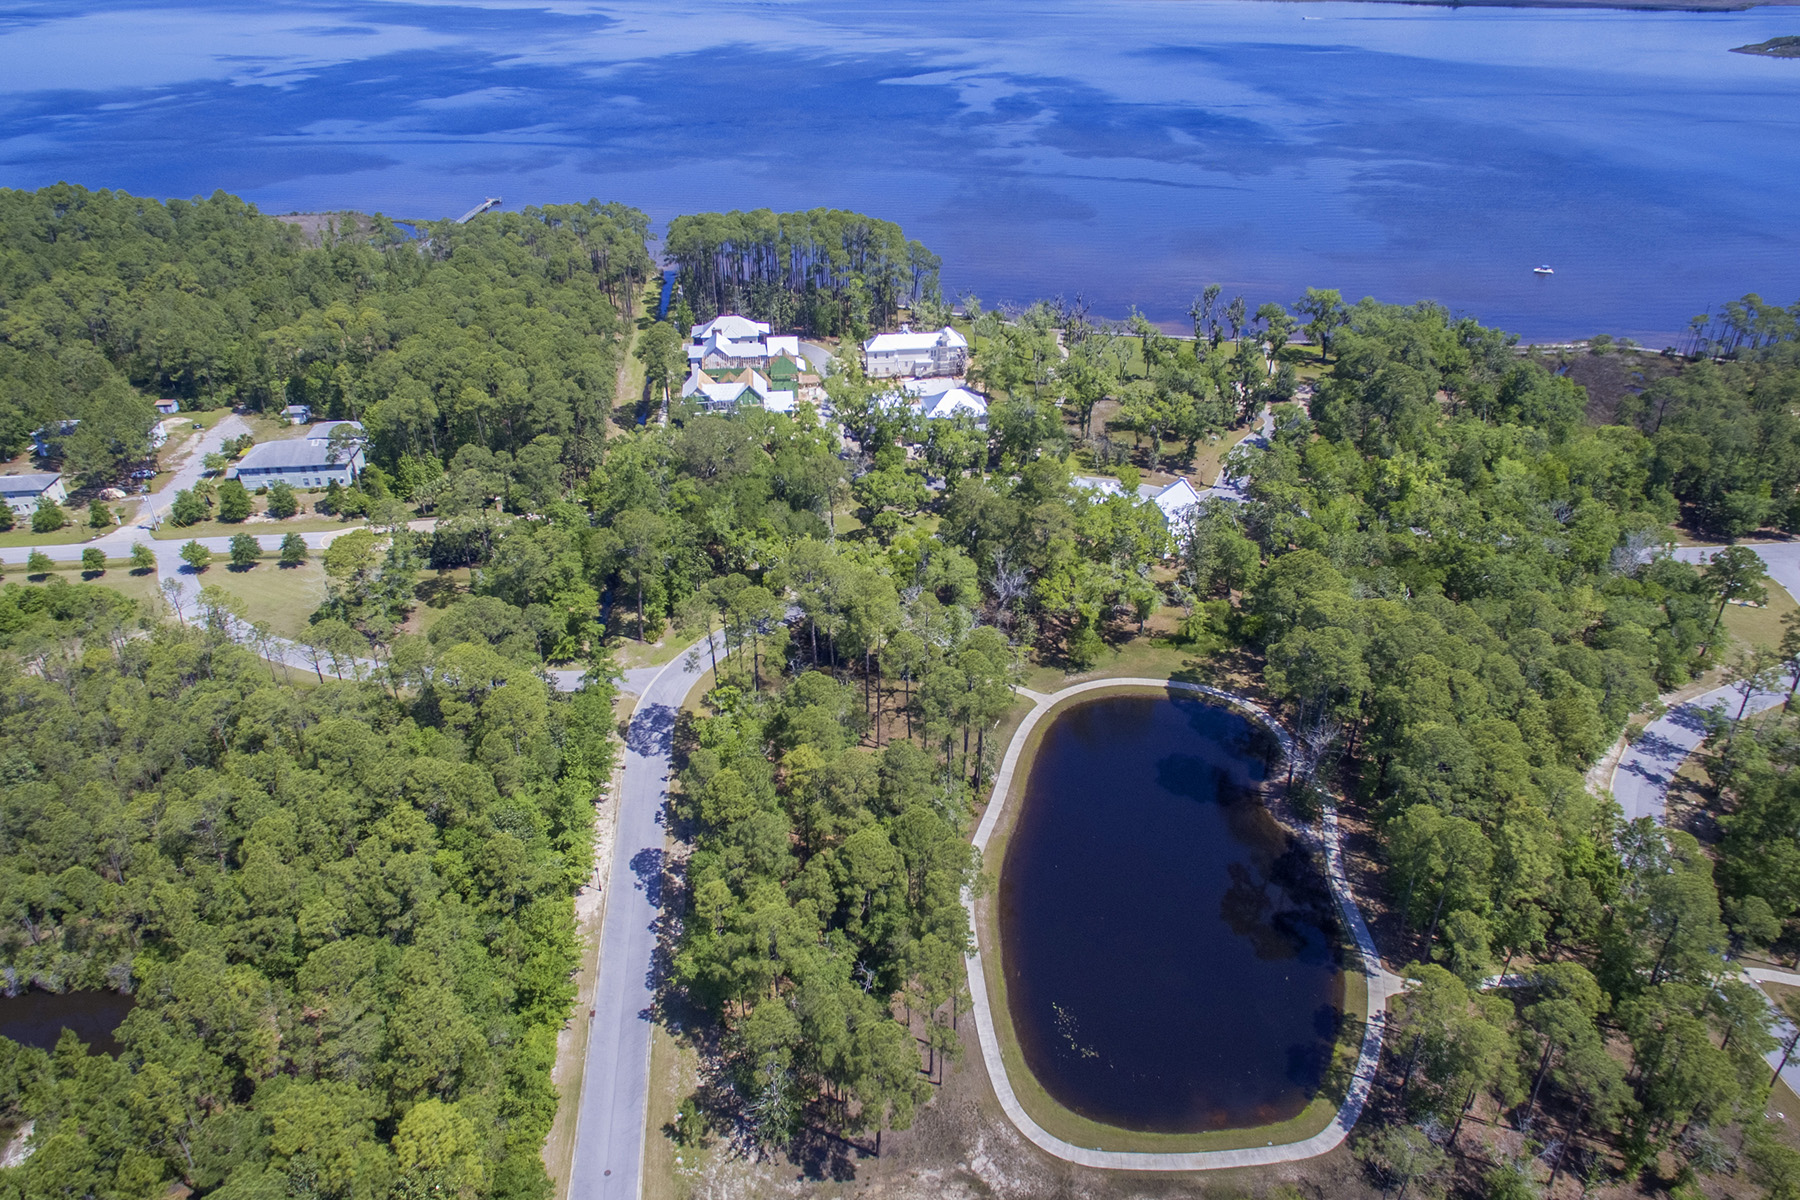 أراضي للـ Sale في LAKEFRONT LIVING IN CHURCHILL OAKS Lot 34 Tyler, Santa Rosa Beach, Florida, 32459 United States